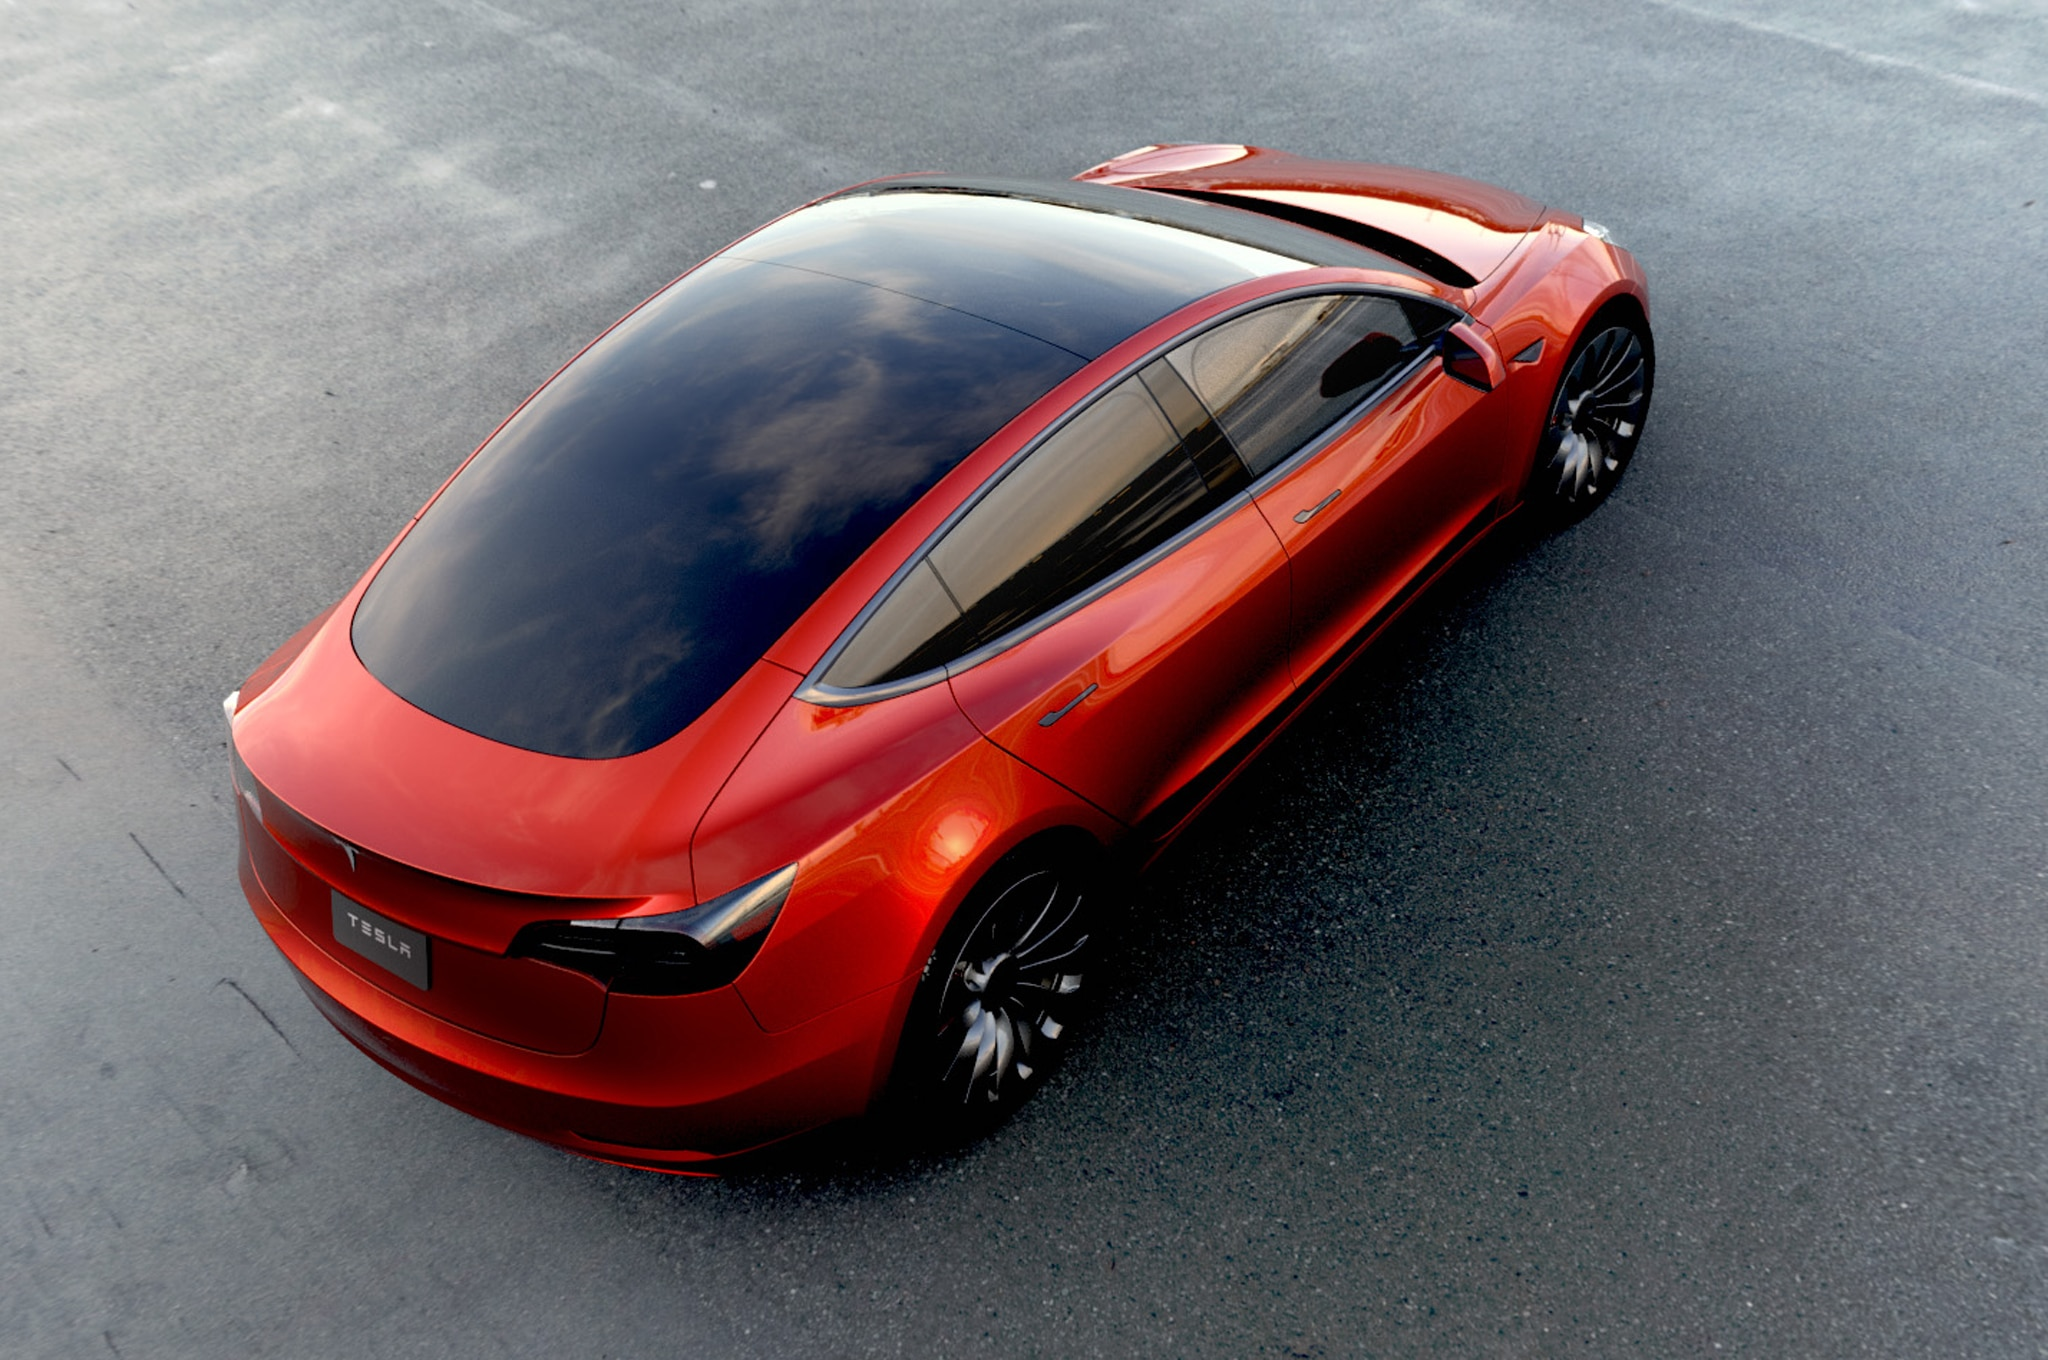 Tesla Model 3 Rear View Above In Red